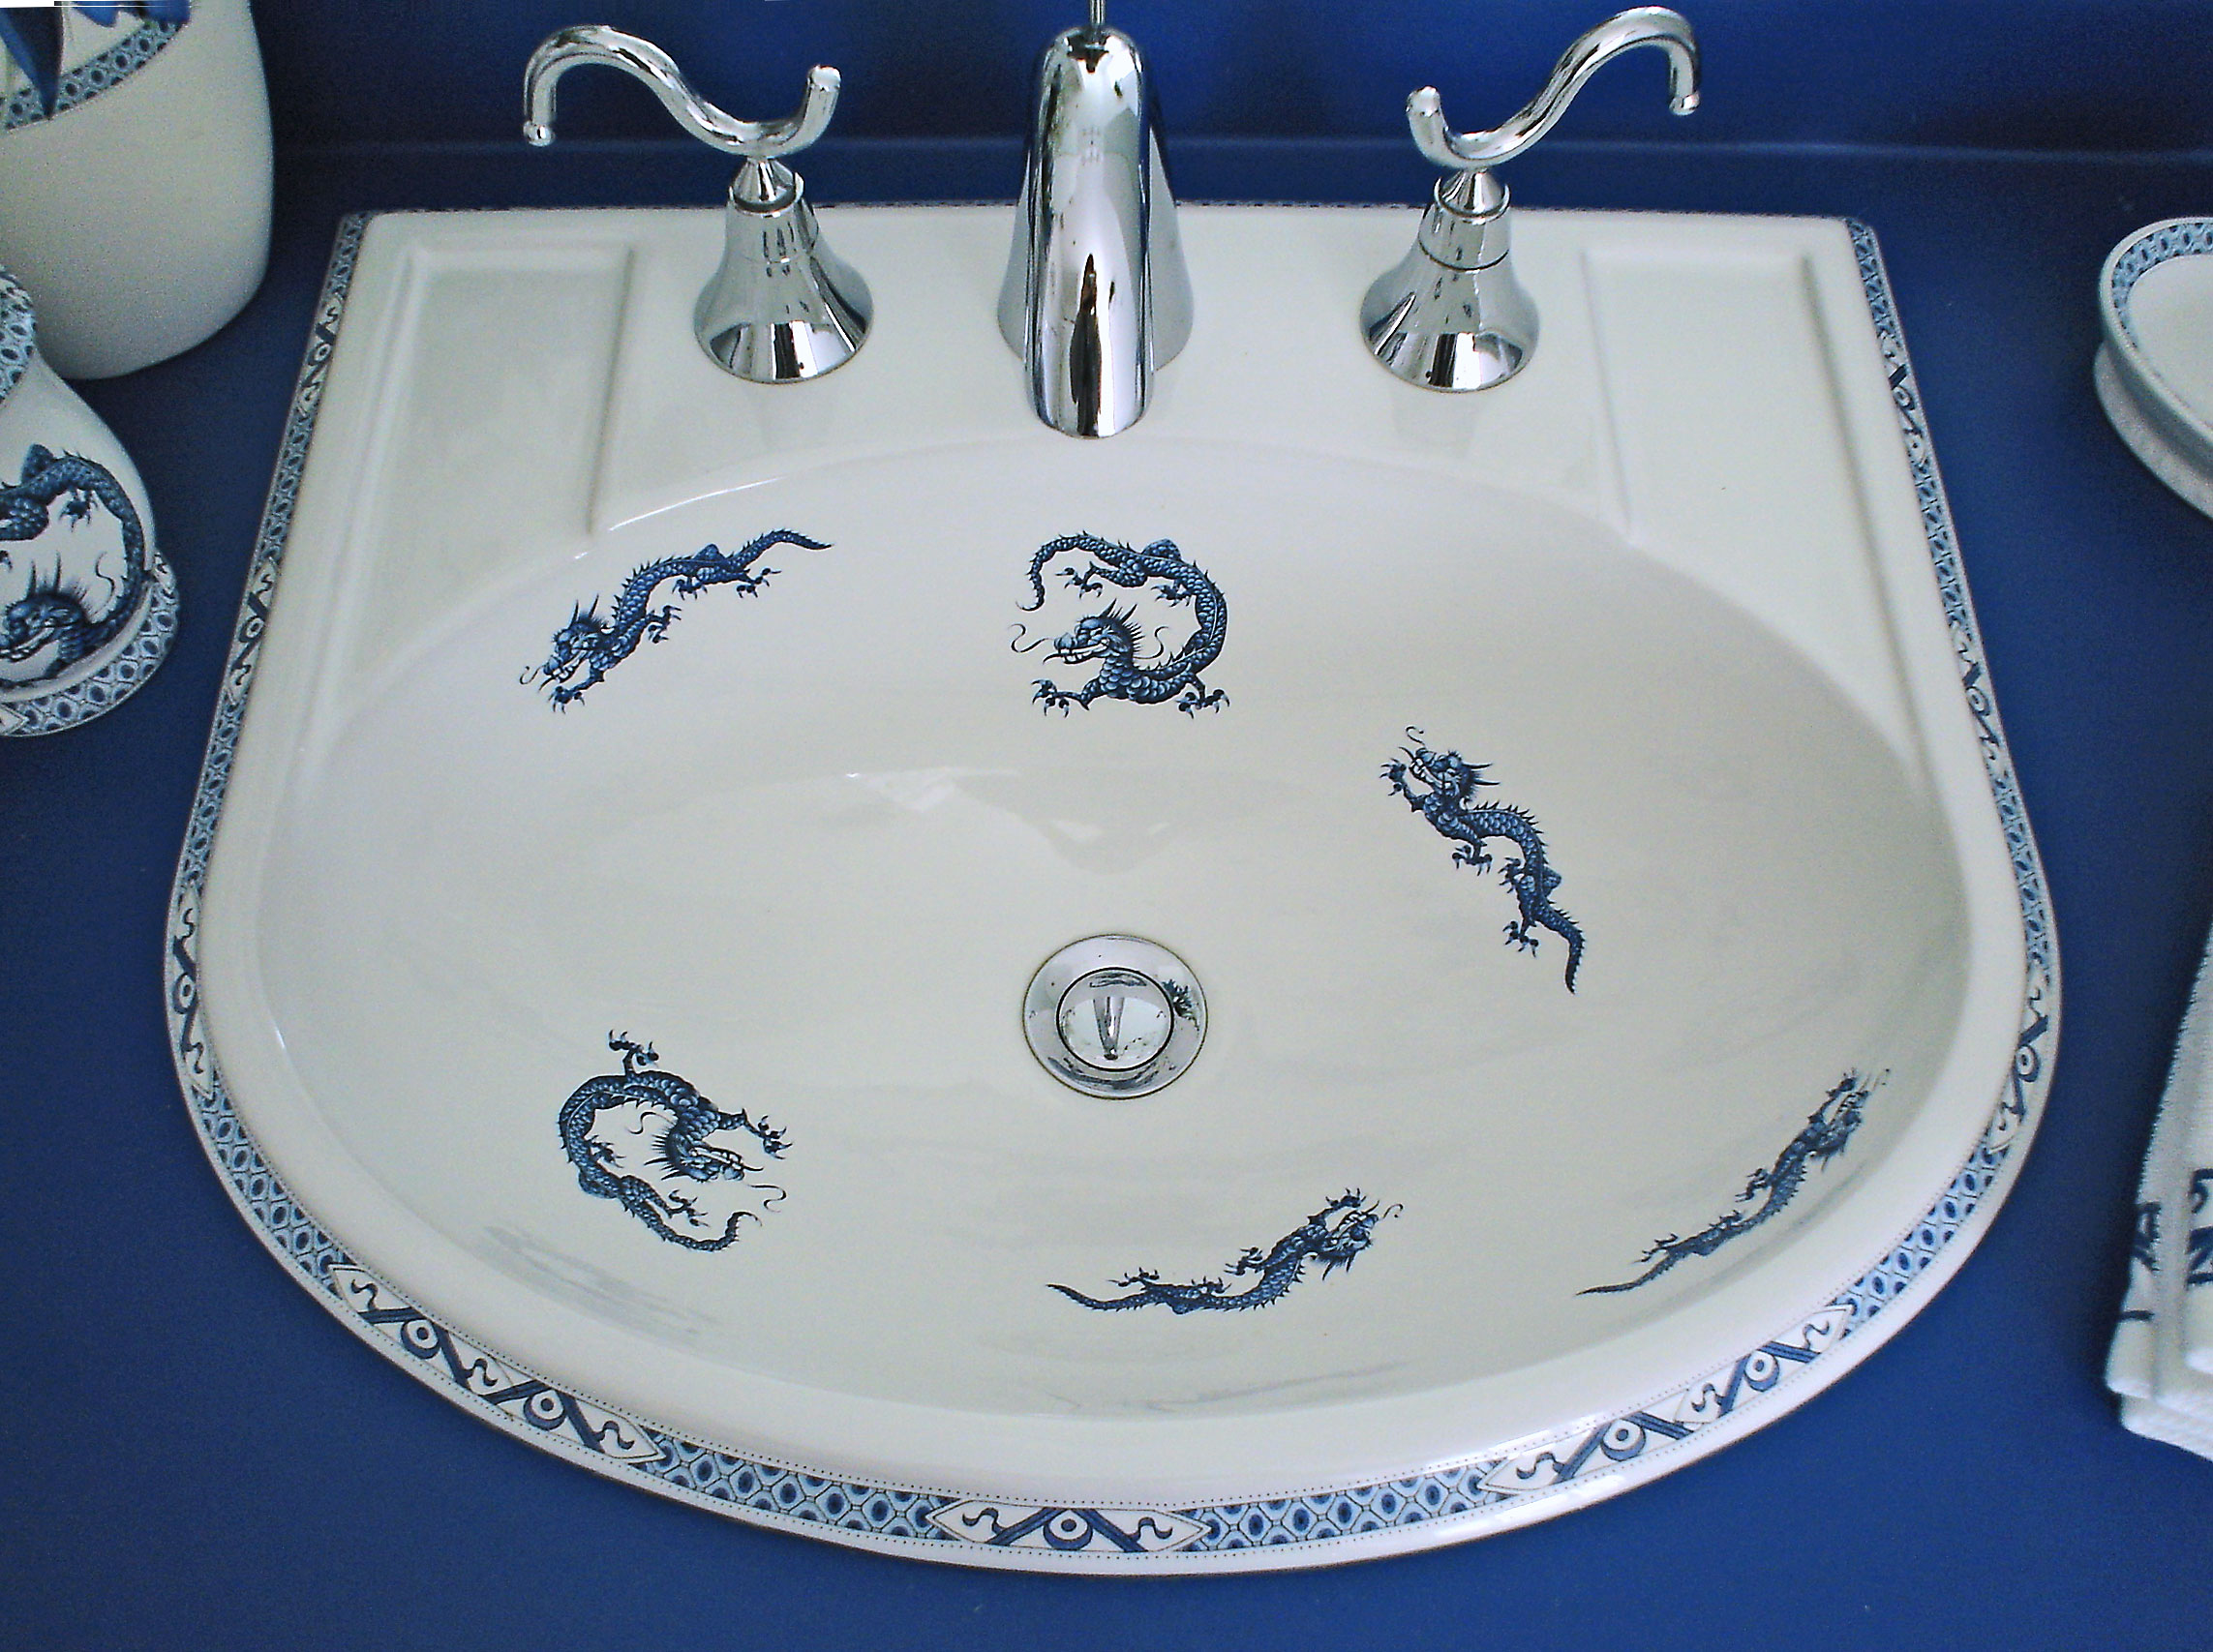 Dragon Bathroom Accessories Oriental Dragons In A Blue And White Bathroom The